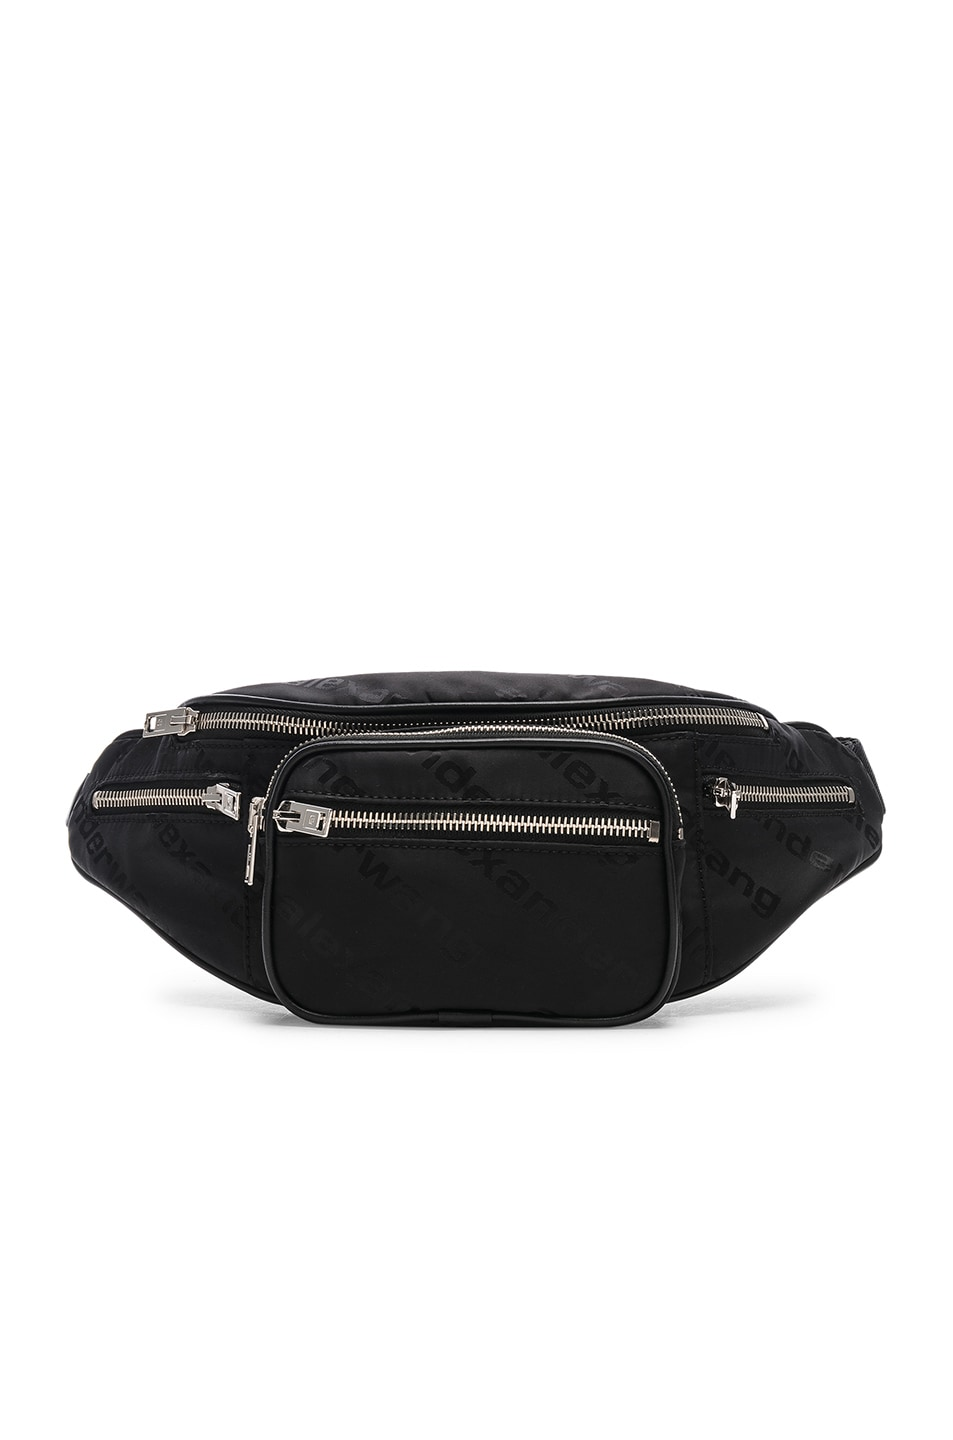 Image 1 of Alexander Wang Jacquard Logo Attica Fanny Pack in Black